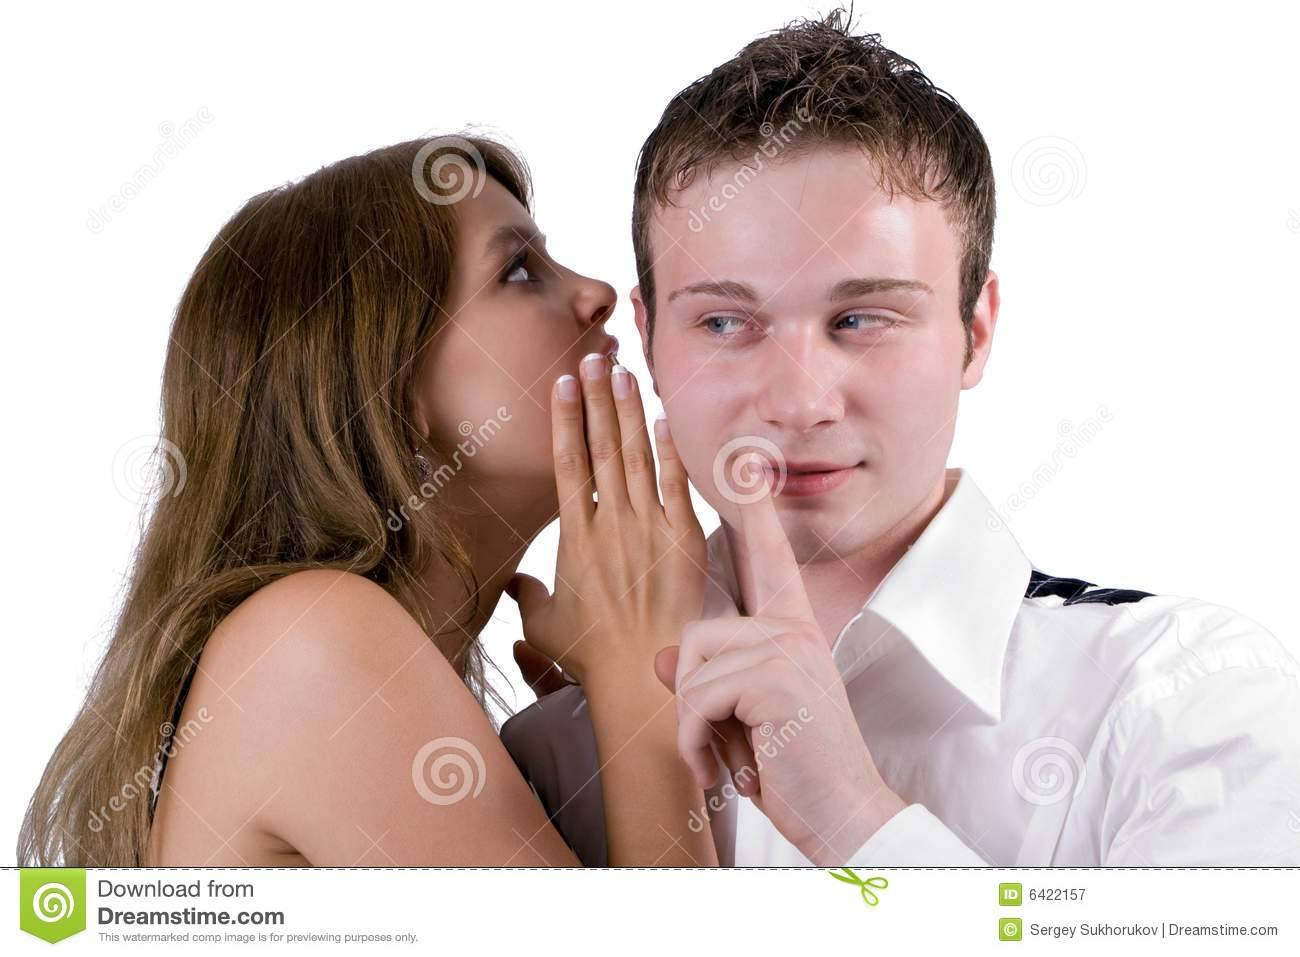 Young woman whispers on an ear to the young man